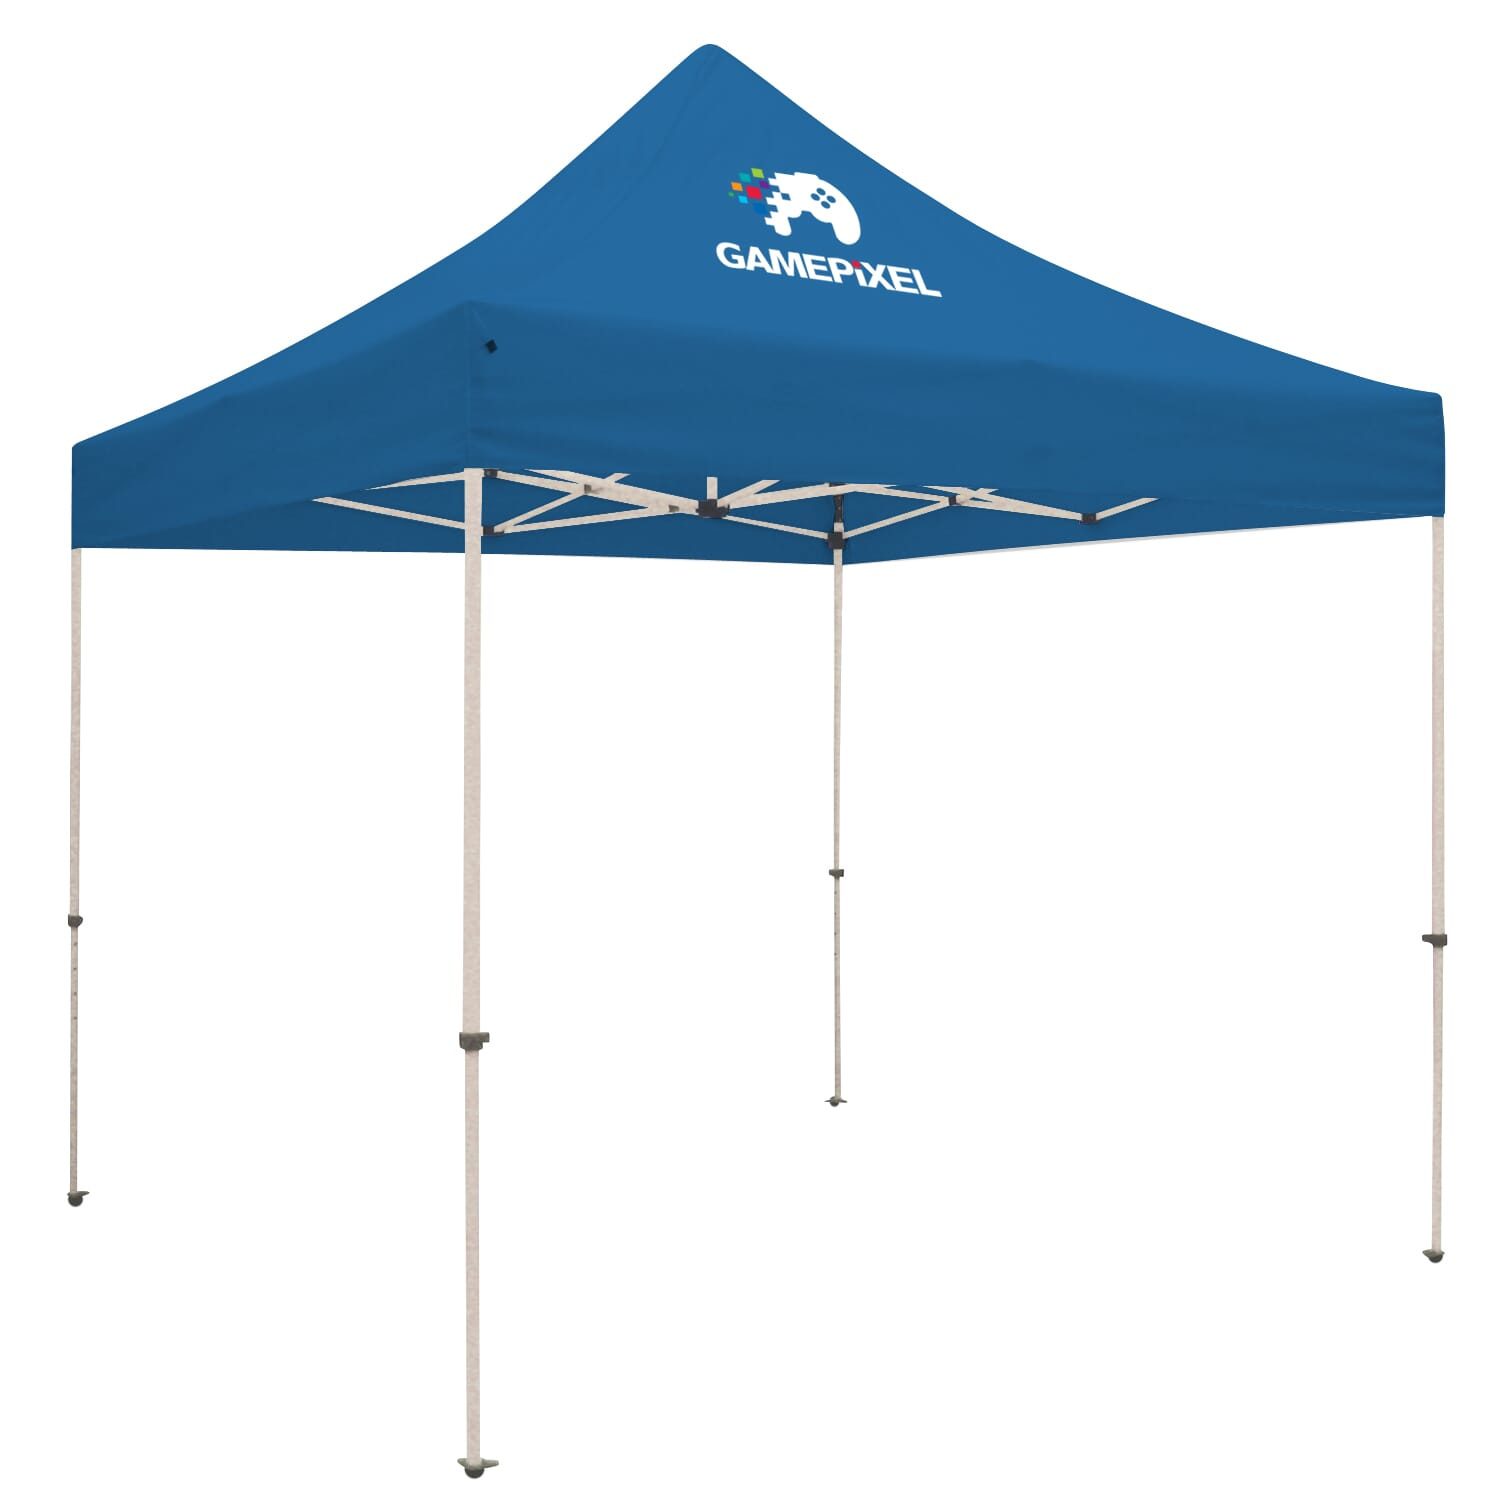 Customized event tent